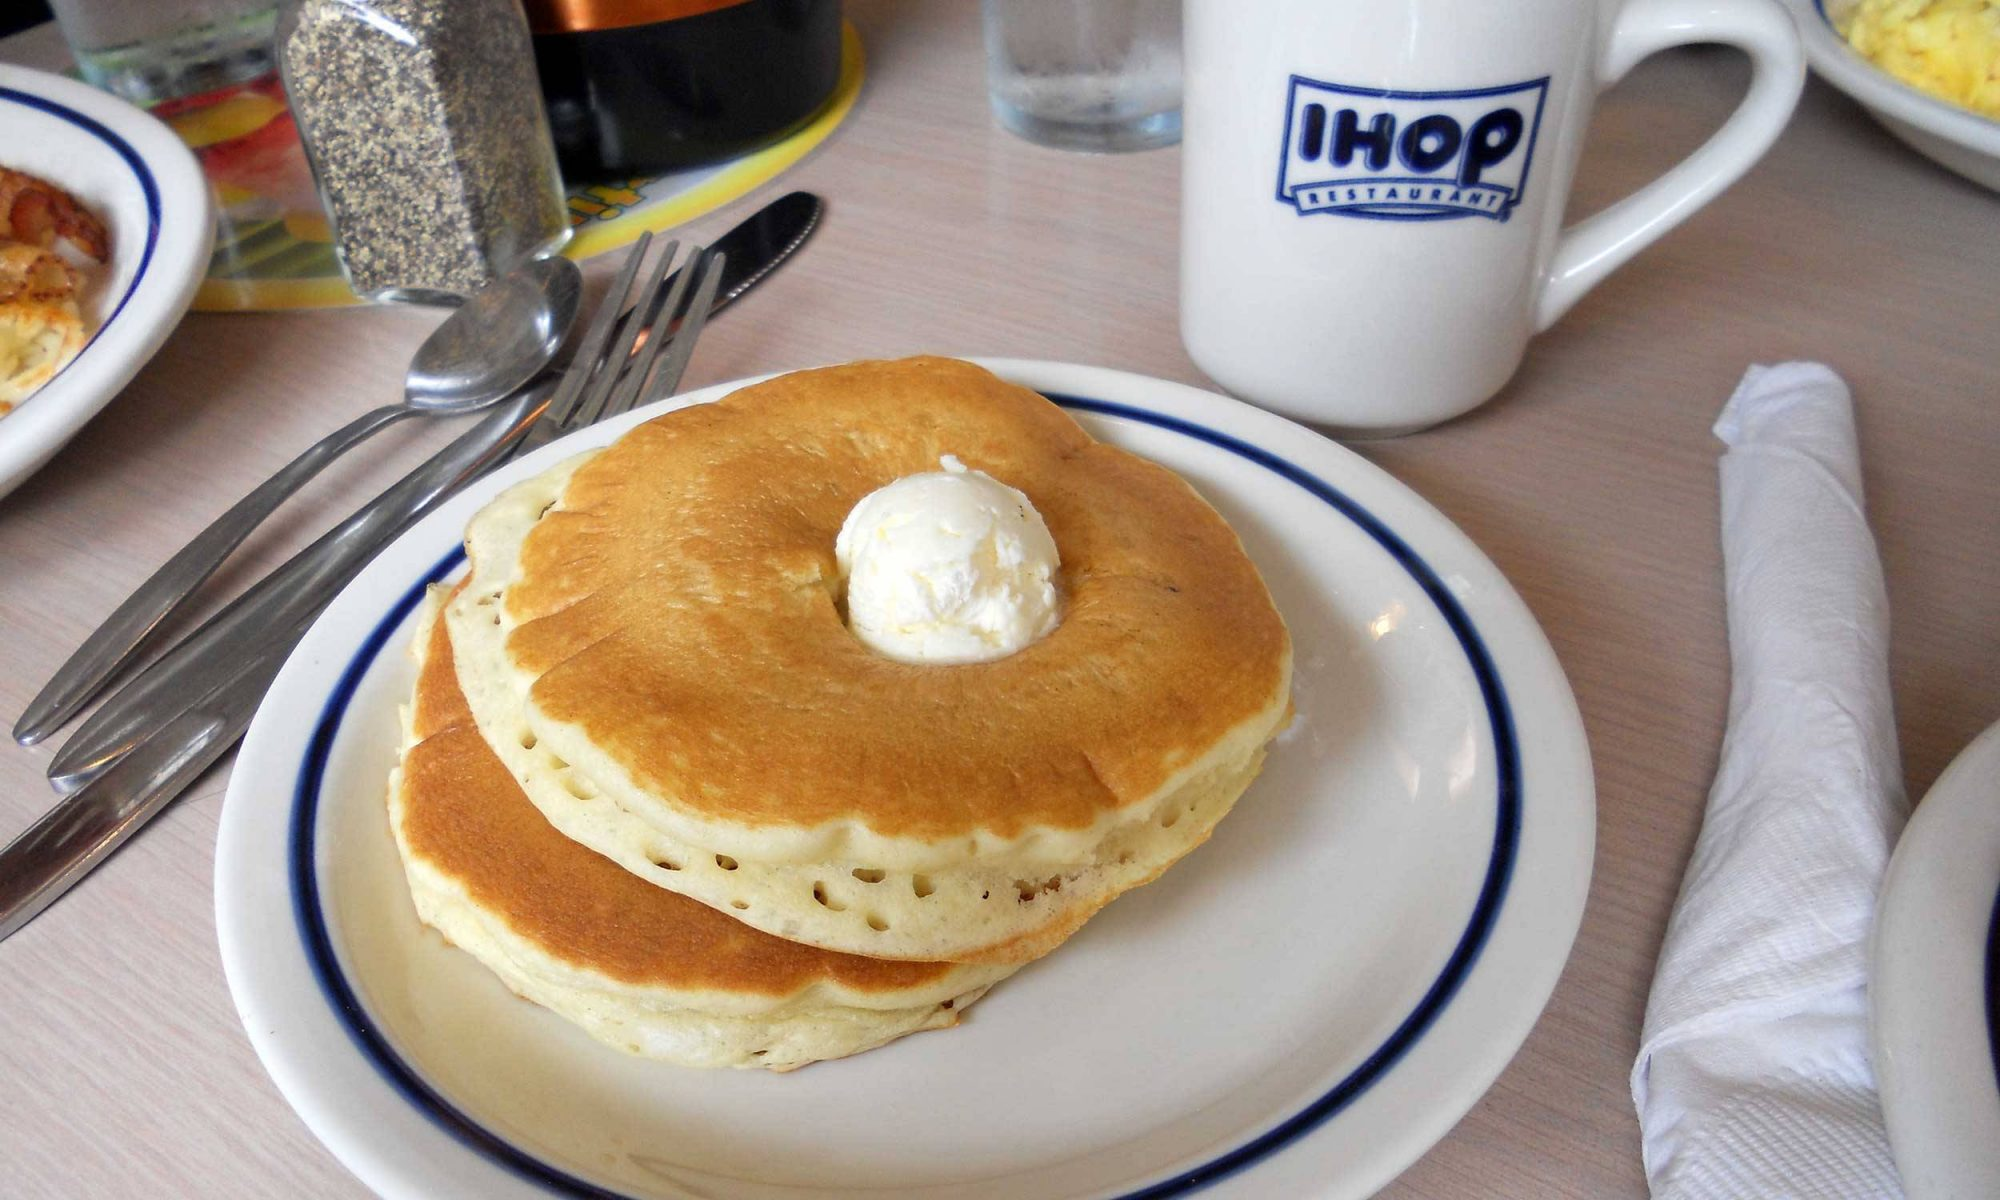 Get Free IHOP Pancakes on March 7 for National Pancake Day